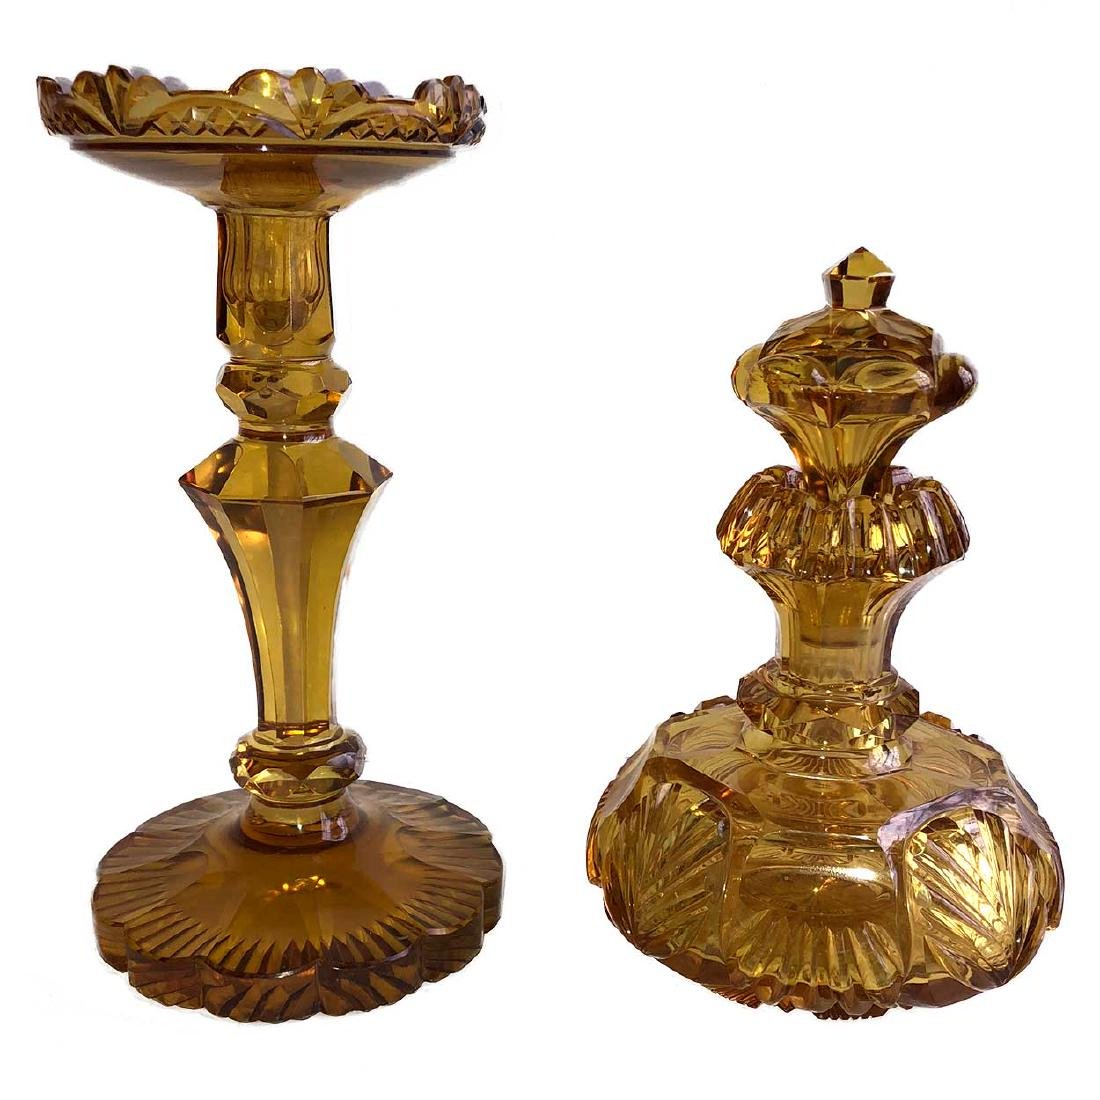 Amber Cut Glass Perfume Bottle and Candlestick